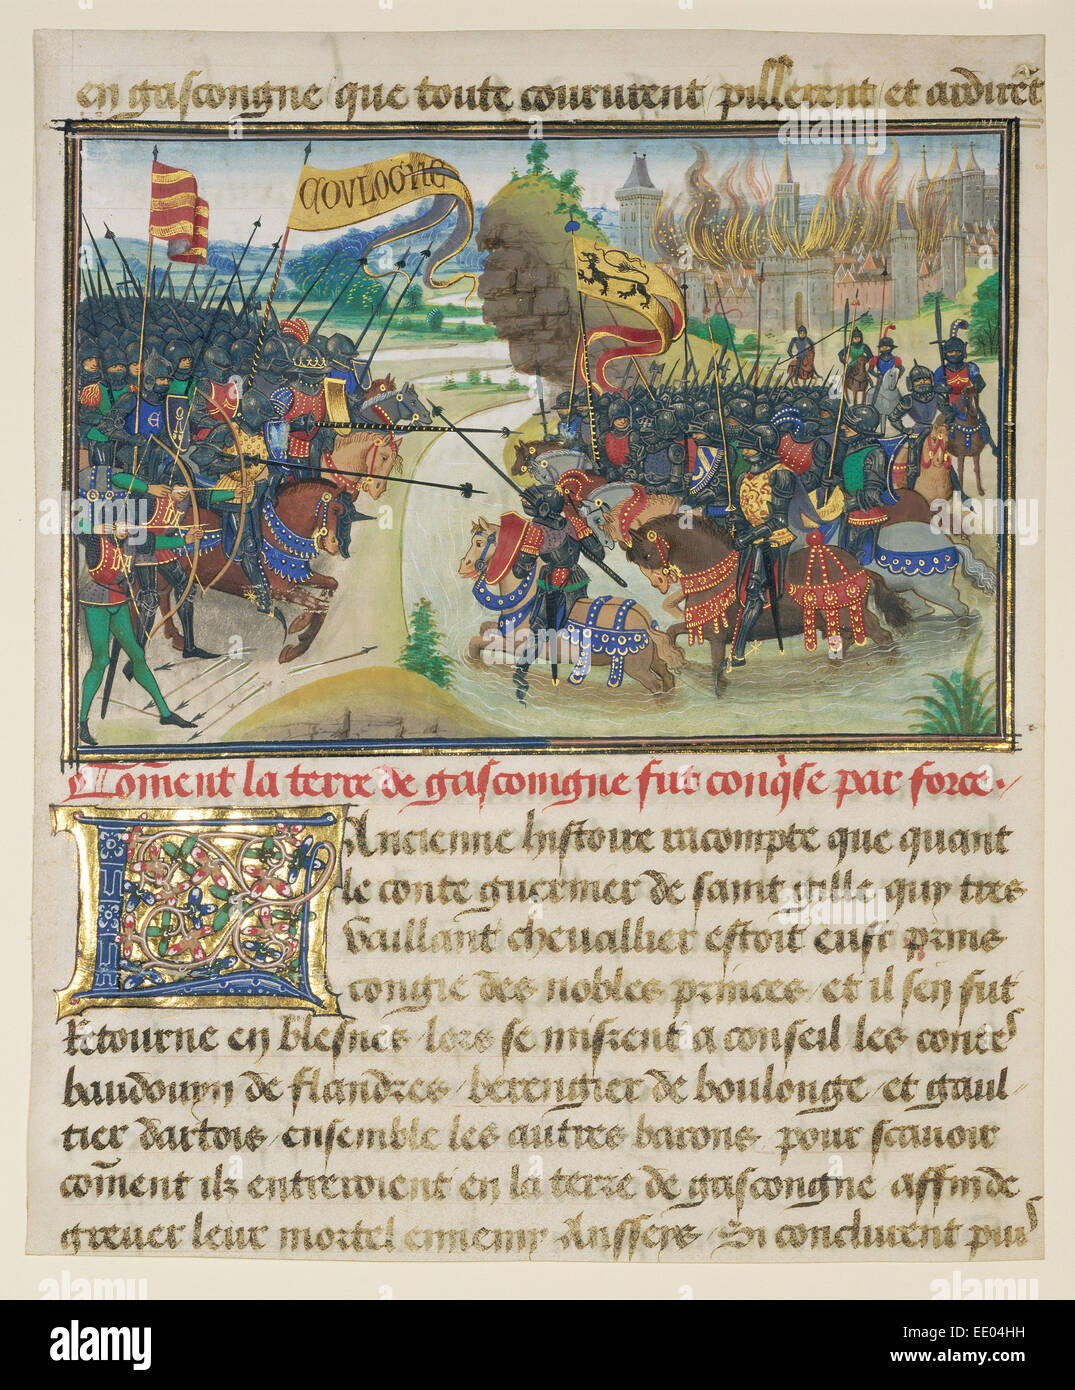 The Conquest of Gasgogne by the Armies of Luxembourg, Boulogne, and Artois; Loyset Liédet, Flemish, active - Stock Image